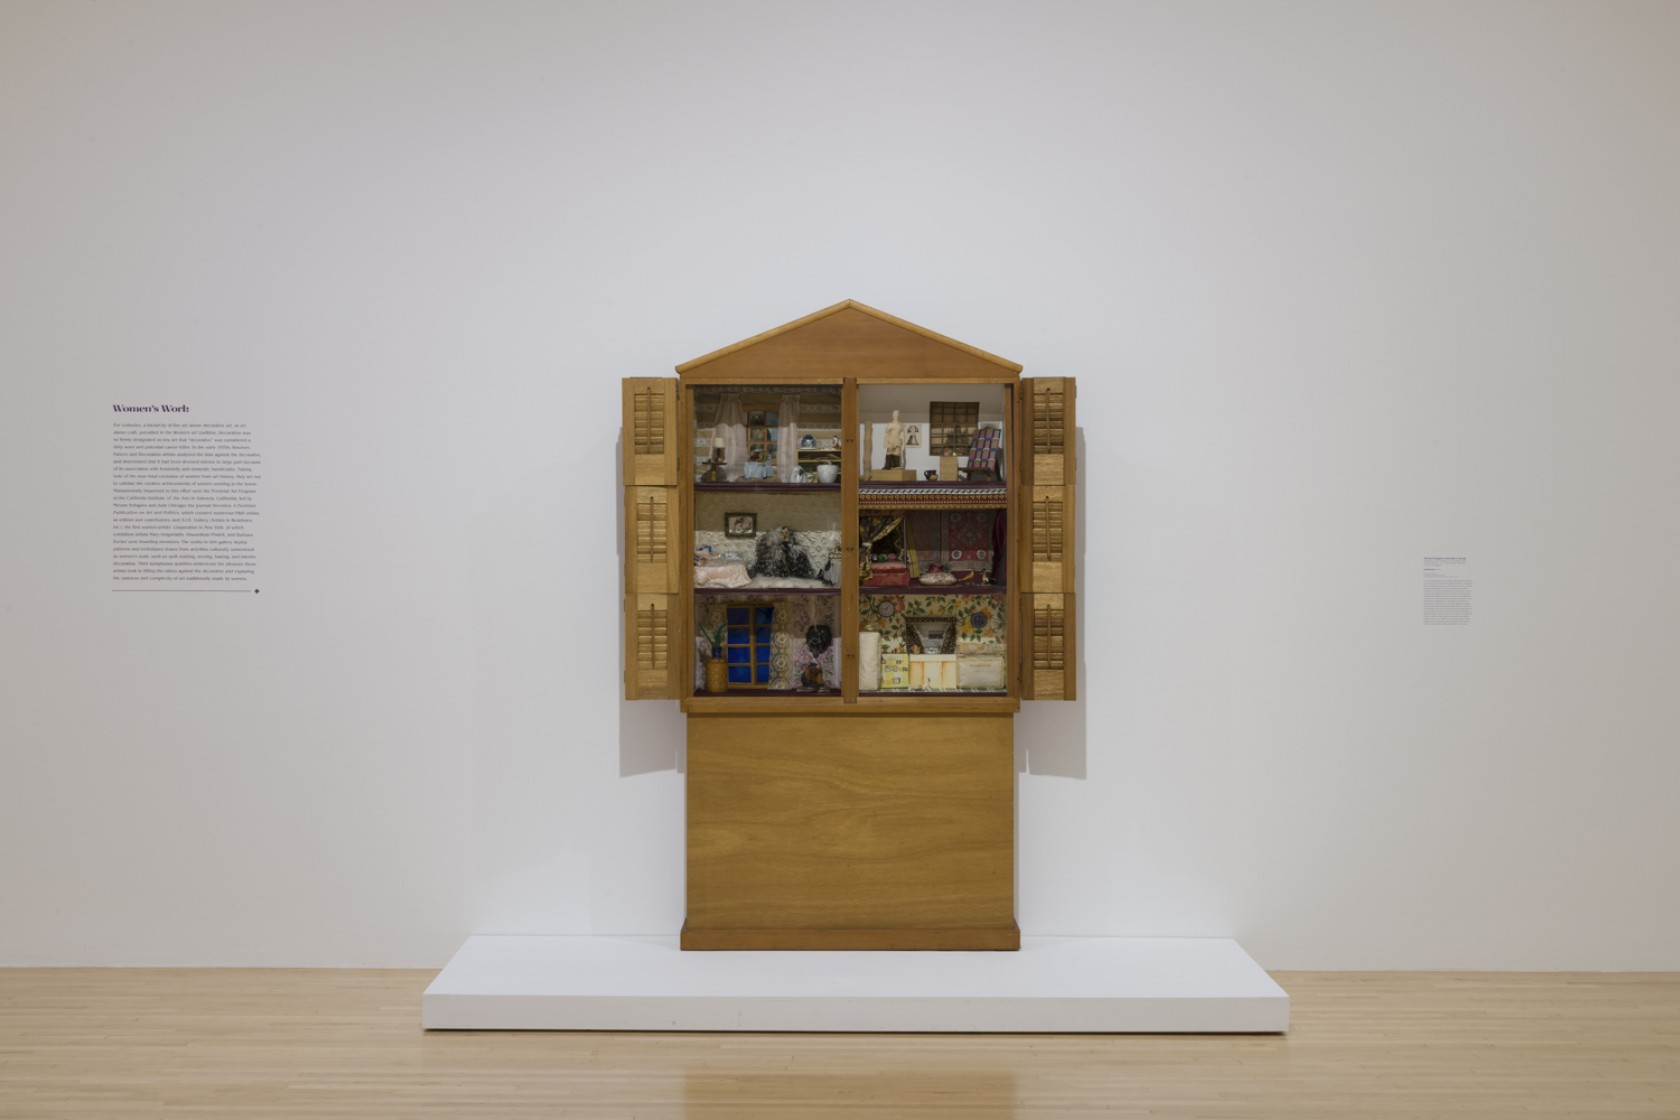 Miriam Schapiro with Sherry Brody, Dollhouse, 1972, wood, mixed media, 79 3/4 × 82 × 8 1/2 in. (202.57 × 208.28 × 21.59 cm). Smithsonian American Art Museum. Museum purchase through the Gene Davis Memorial Fund.